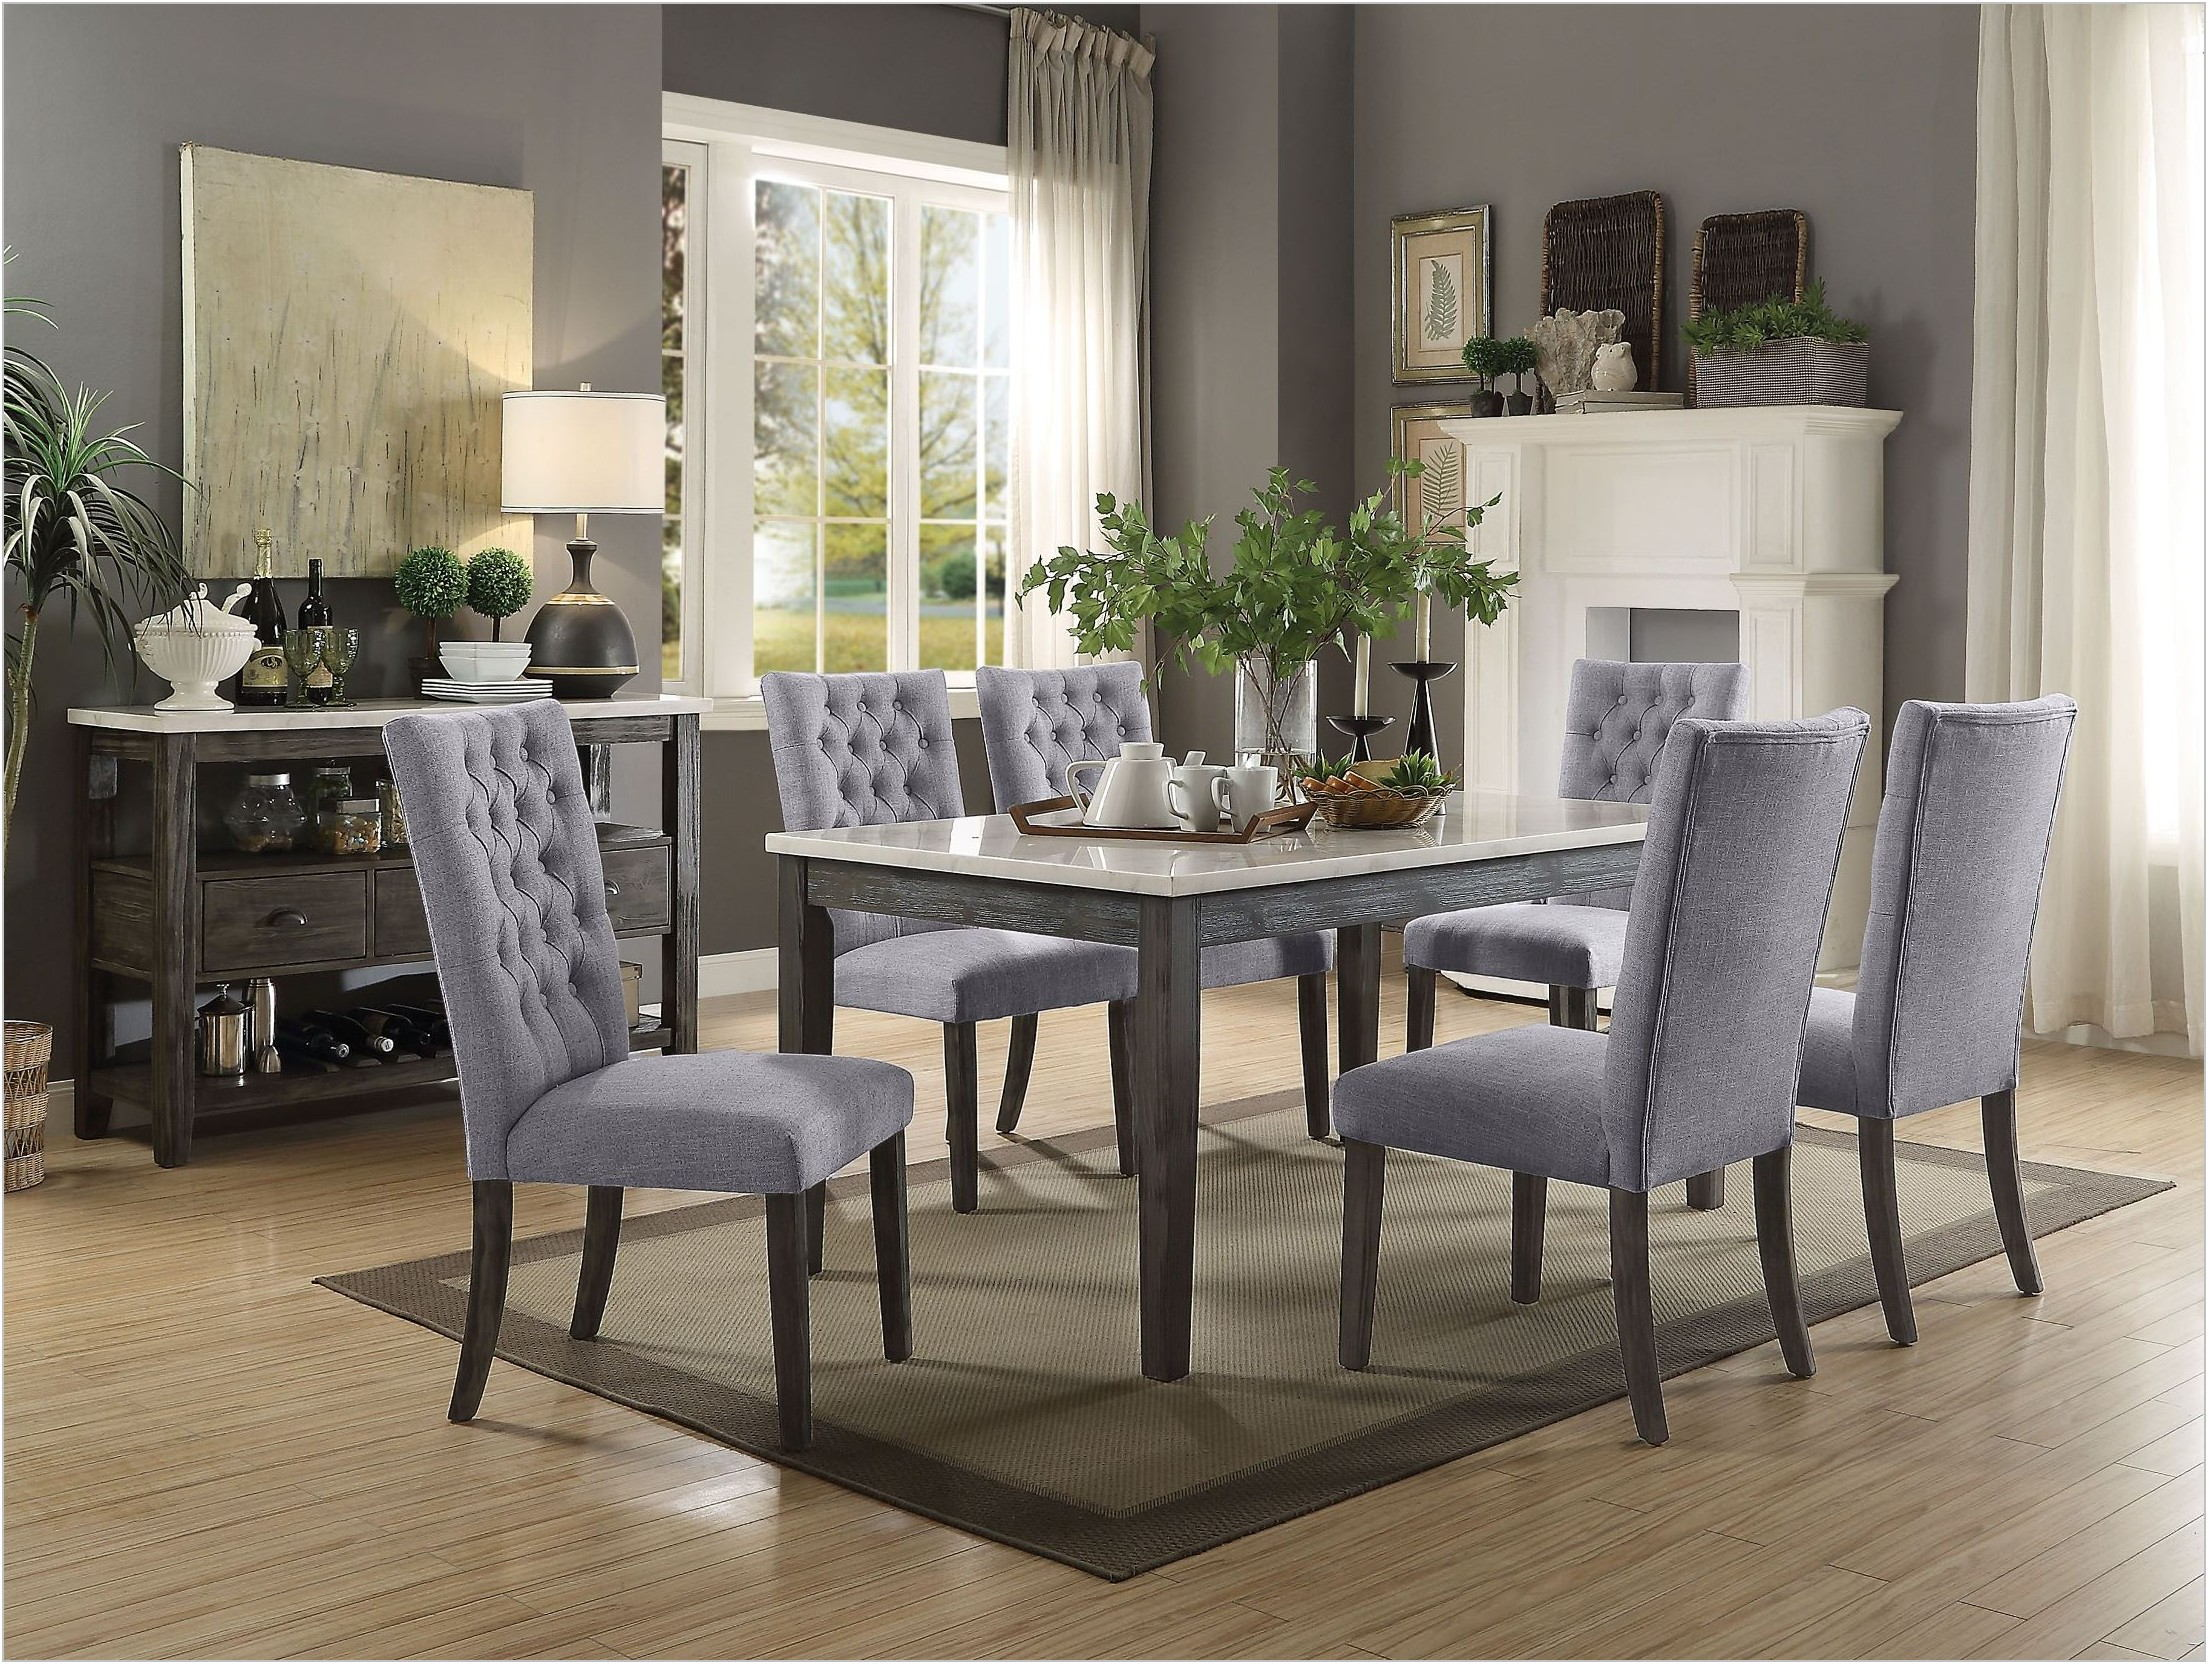 White Oak Dining Room Set